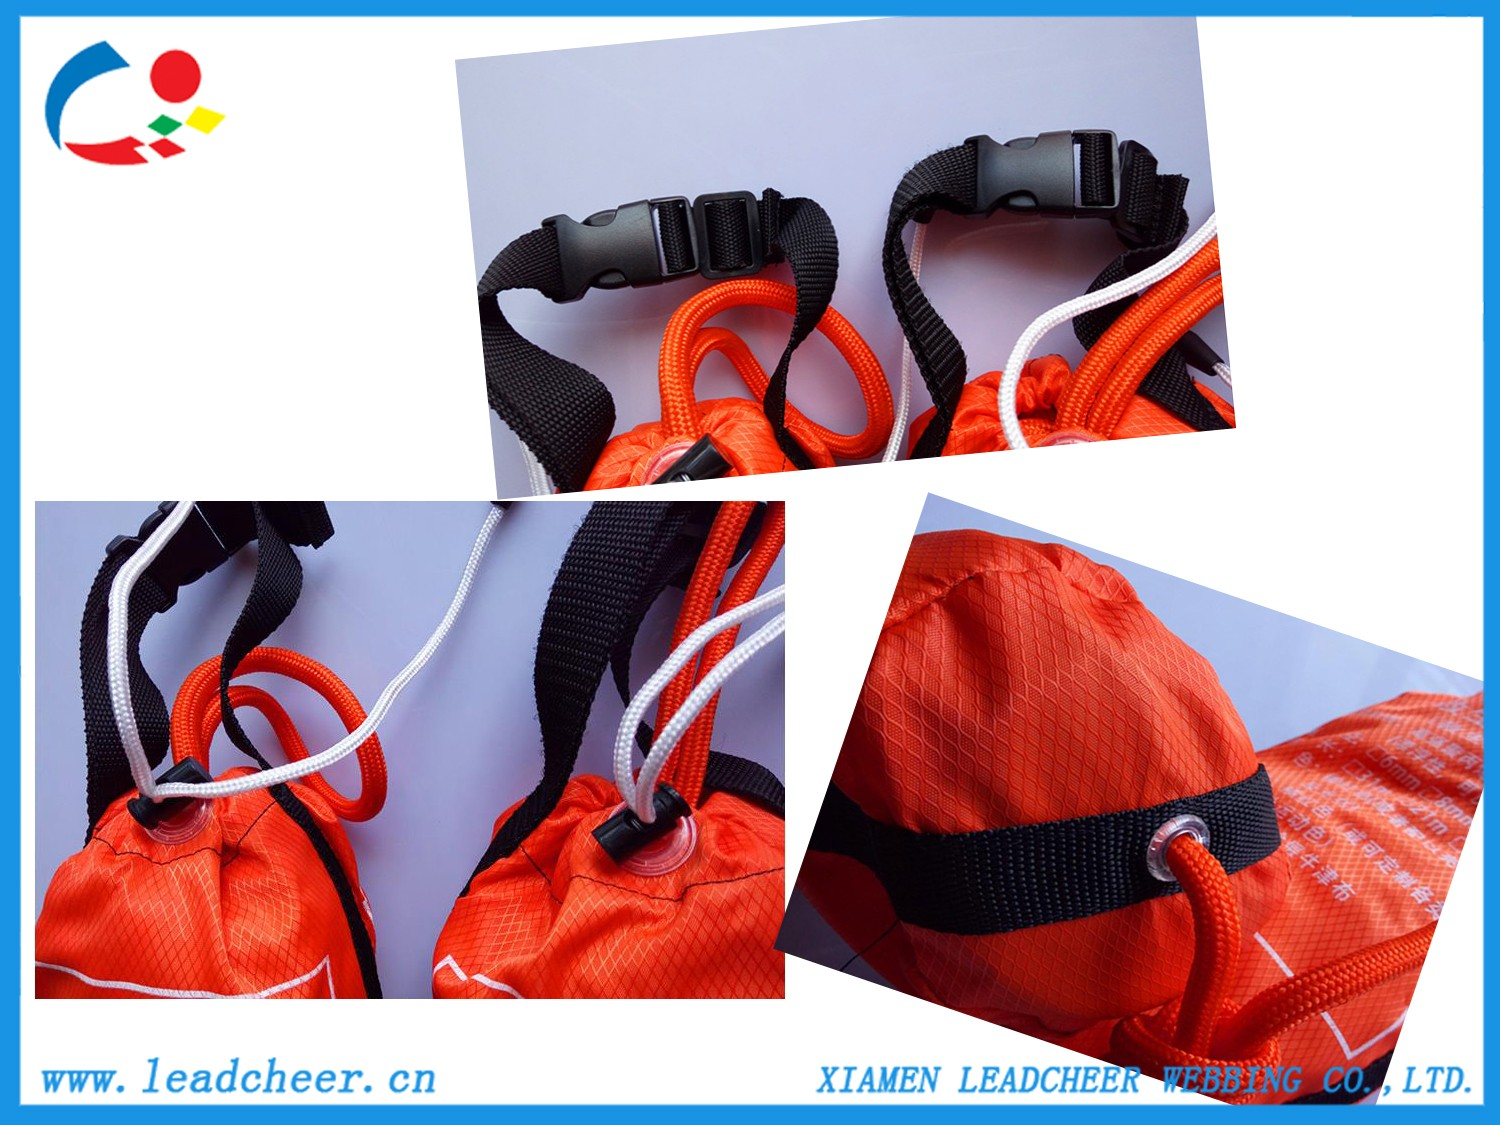 High quality Factory Directly Sale Rescue Throw Bag for Lifesaving Quotes,China Factory Directly Sale Rescue Throw Bag for Lifesaving Factory,Factory Directly Sale Rescue Throw Bag for Lifesaving Purchasing